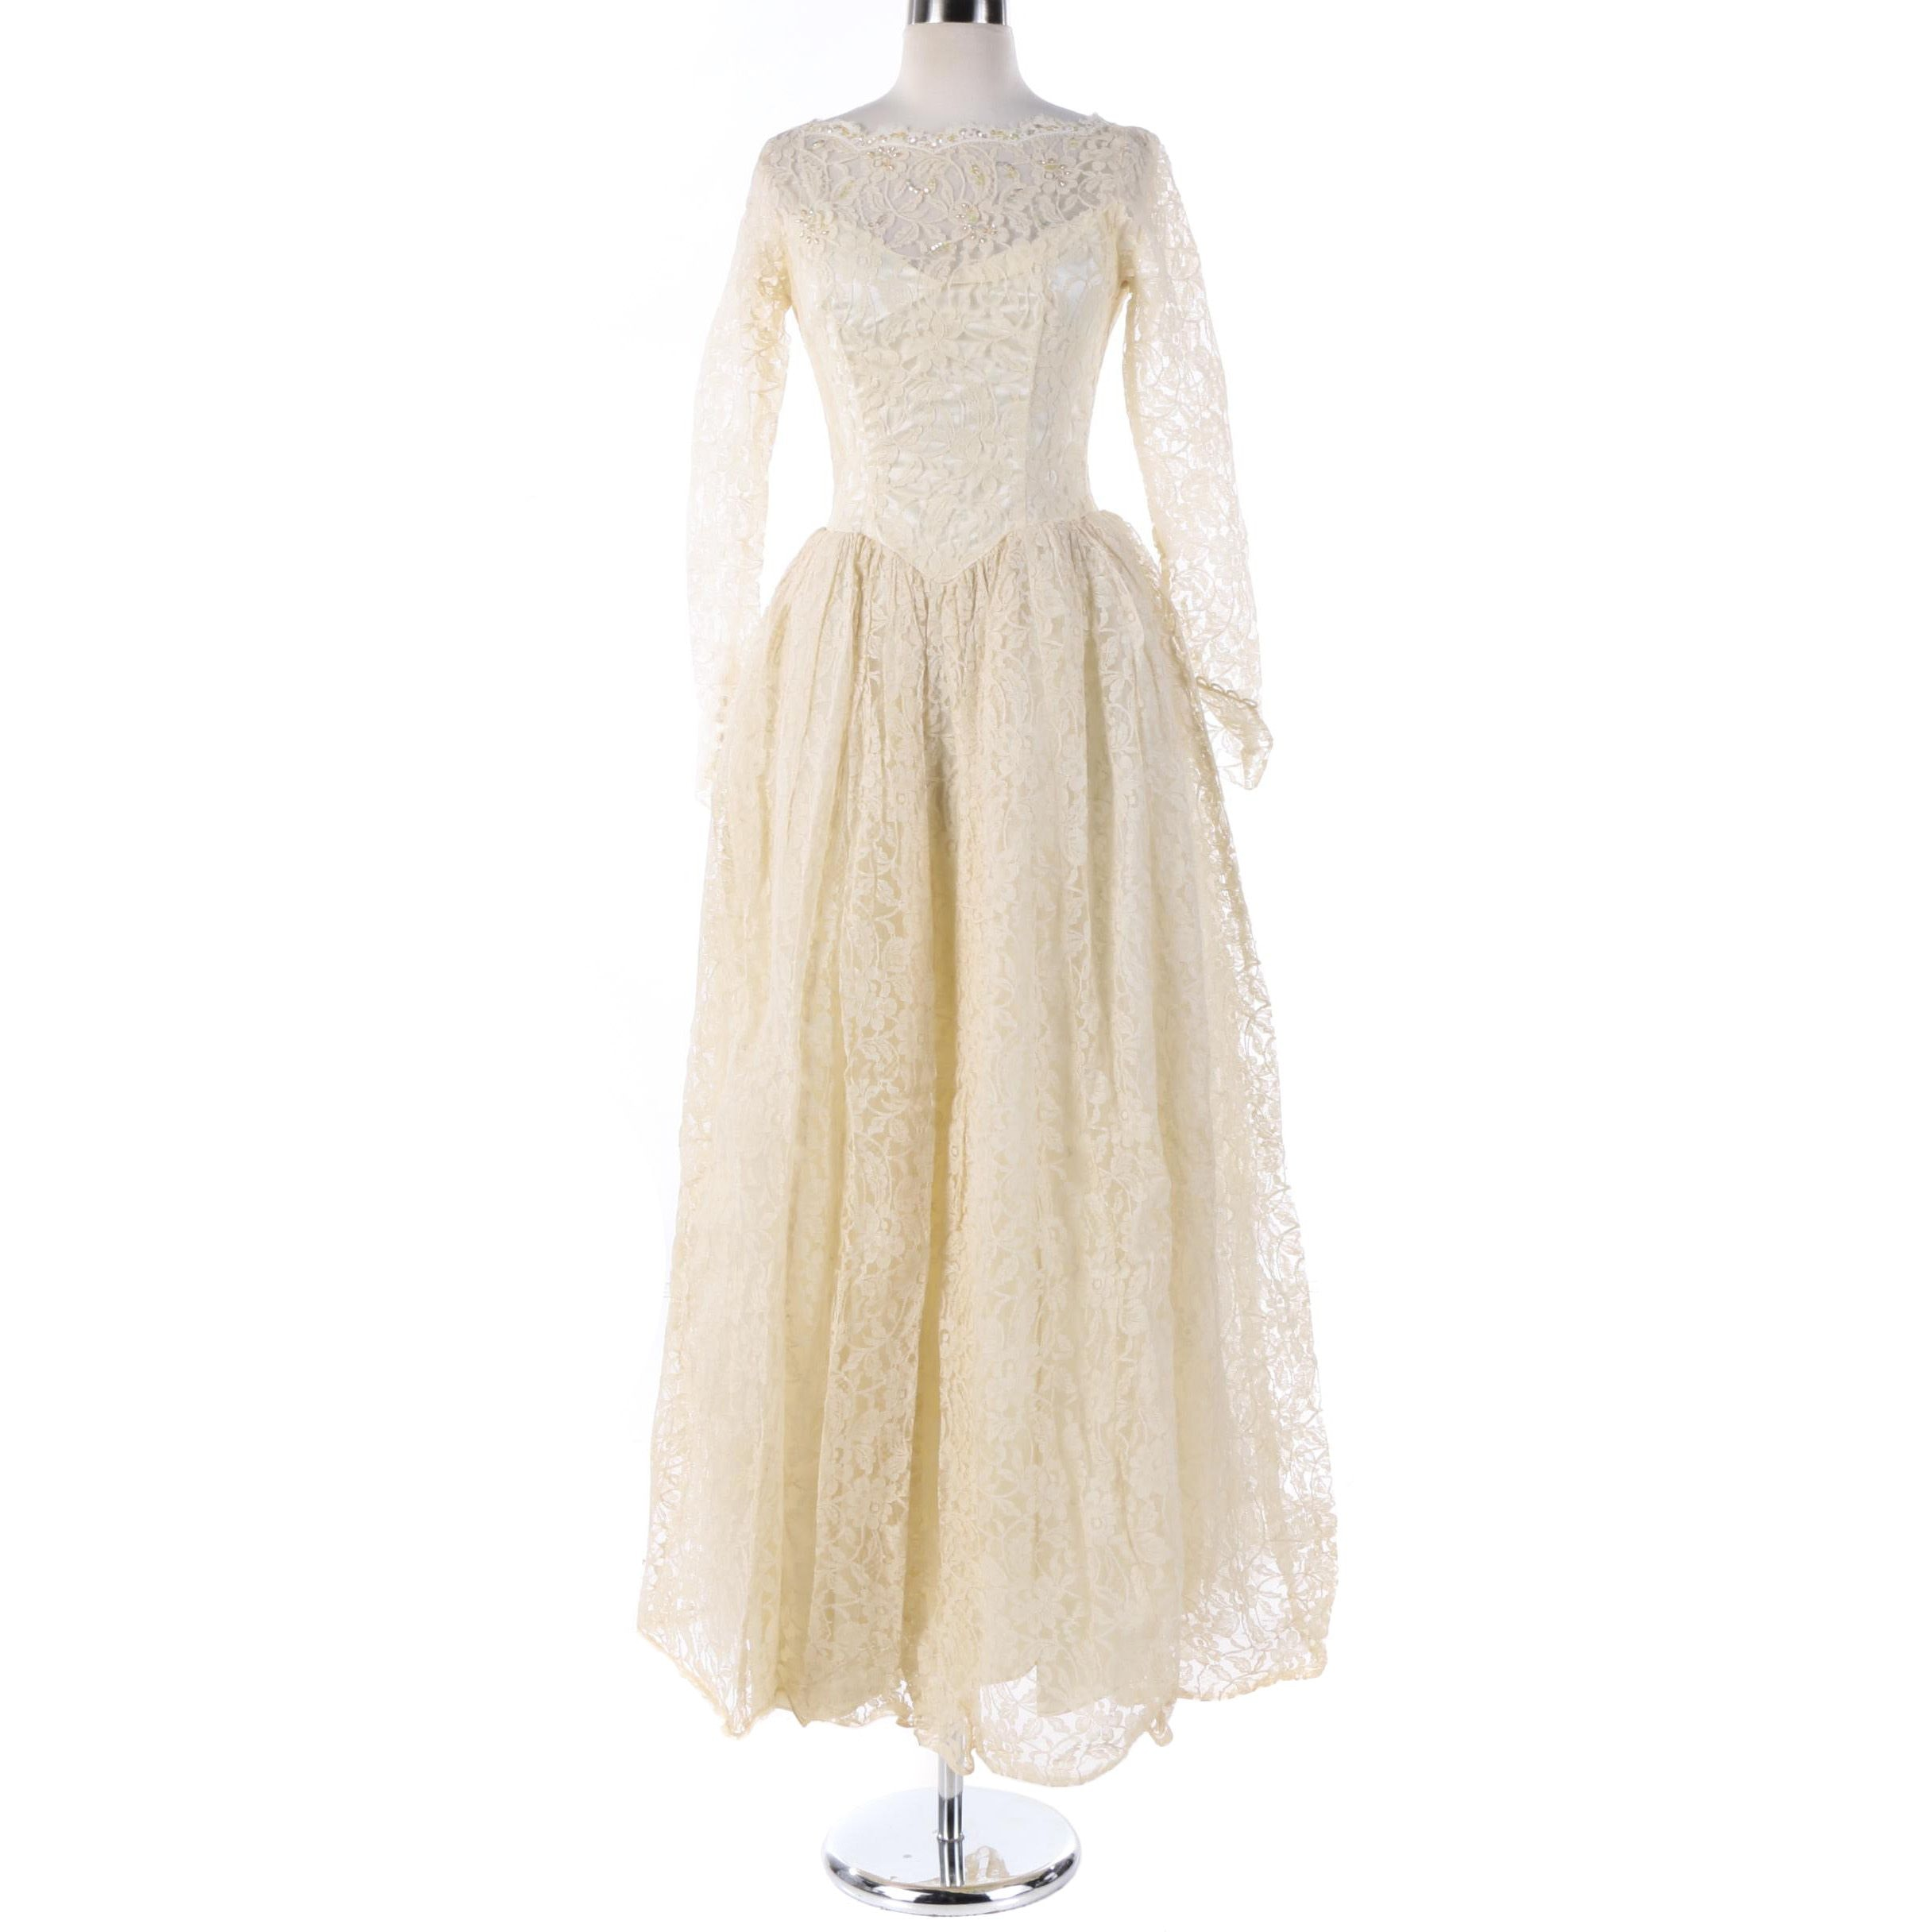 Circa 1960s Vintage Lace Princess Cut Wedding Gown Ebth